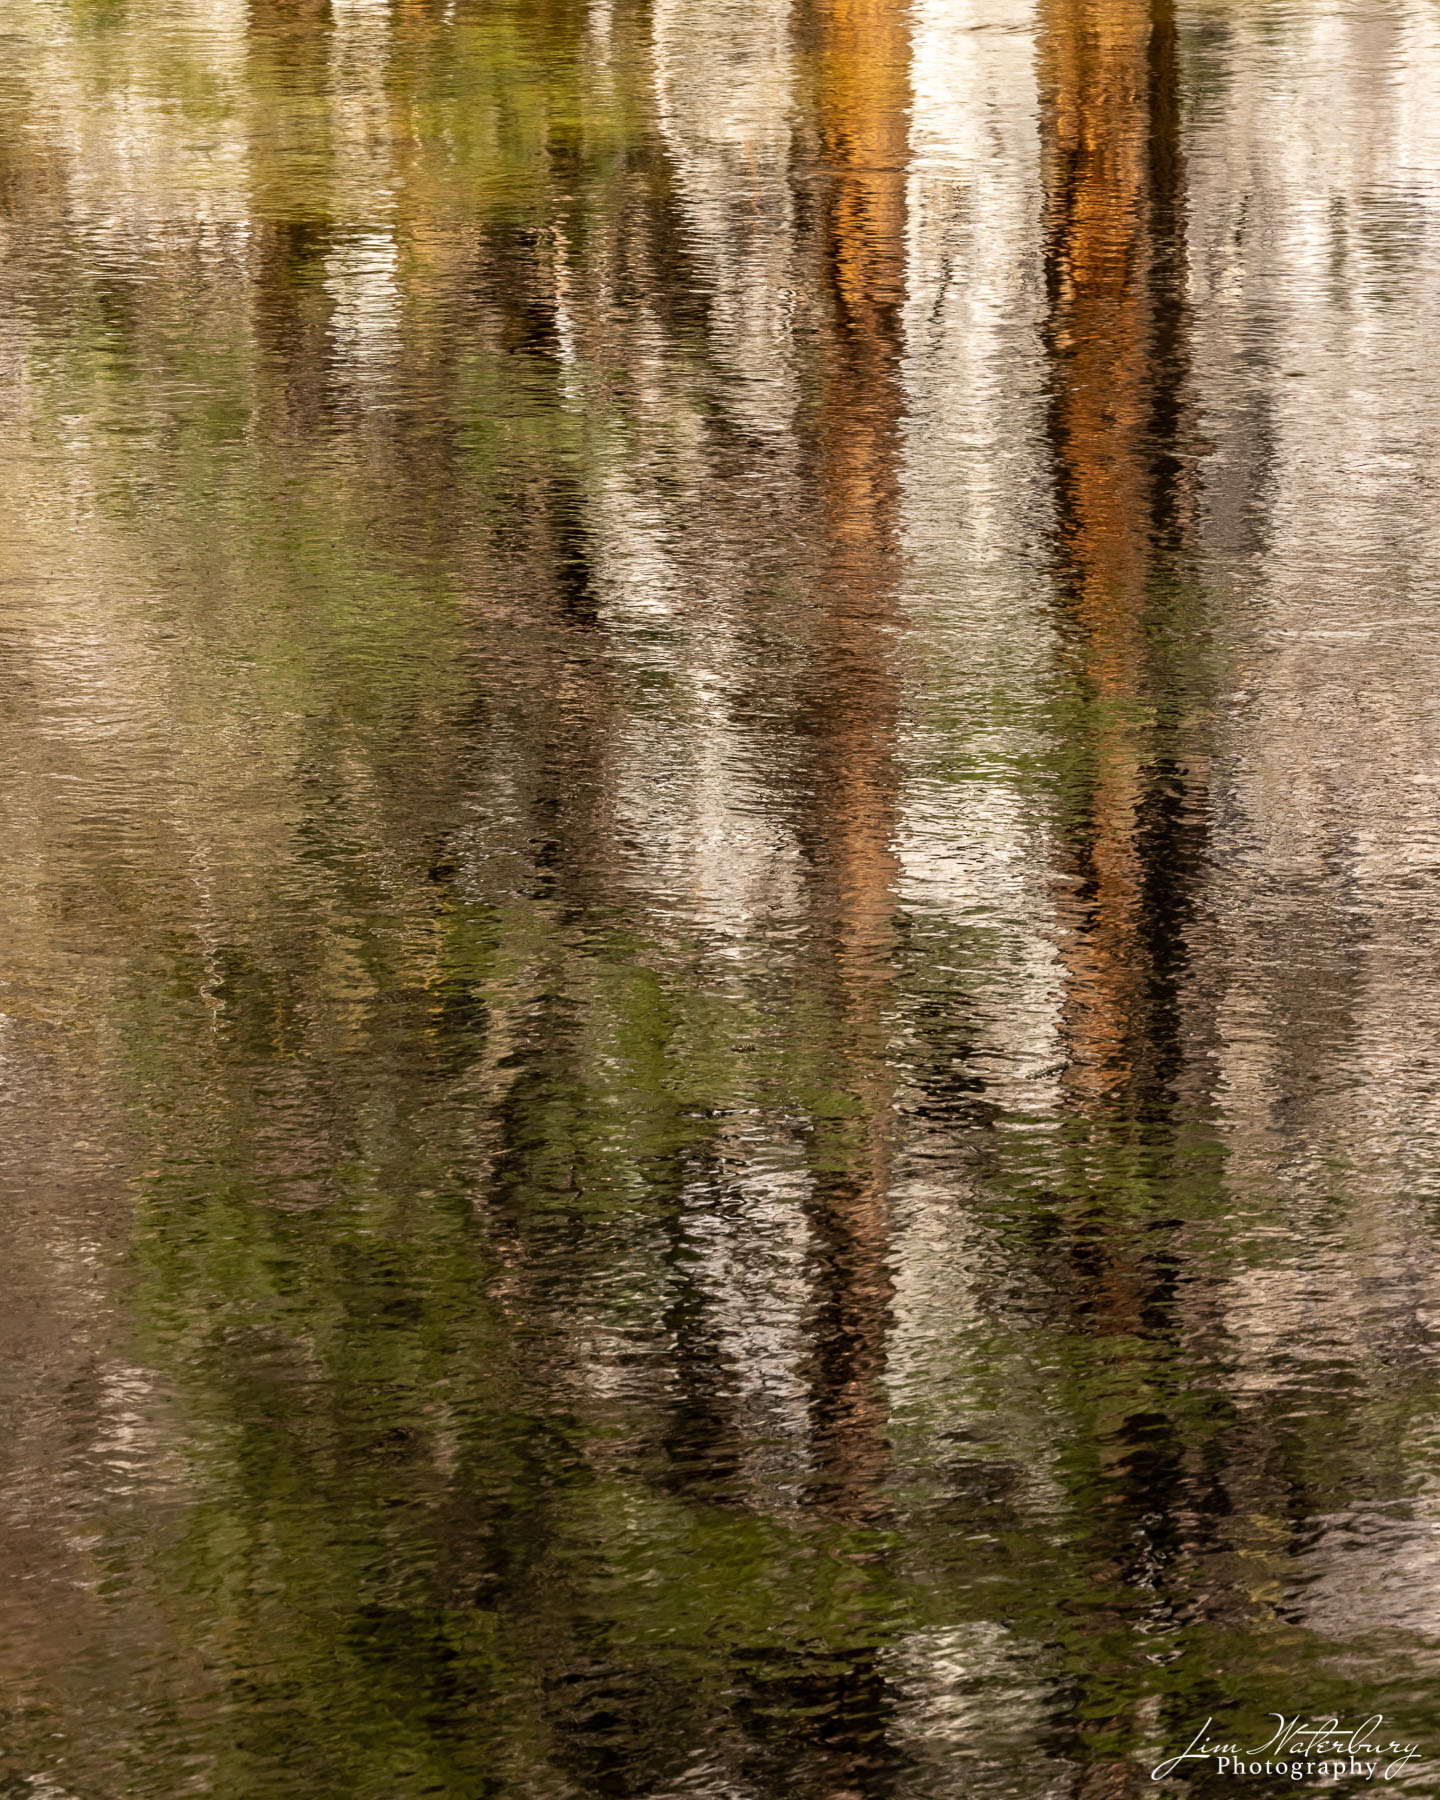 Reflections of trees in the Merced River.